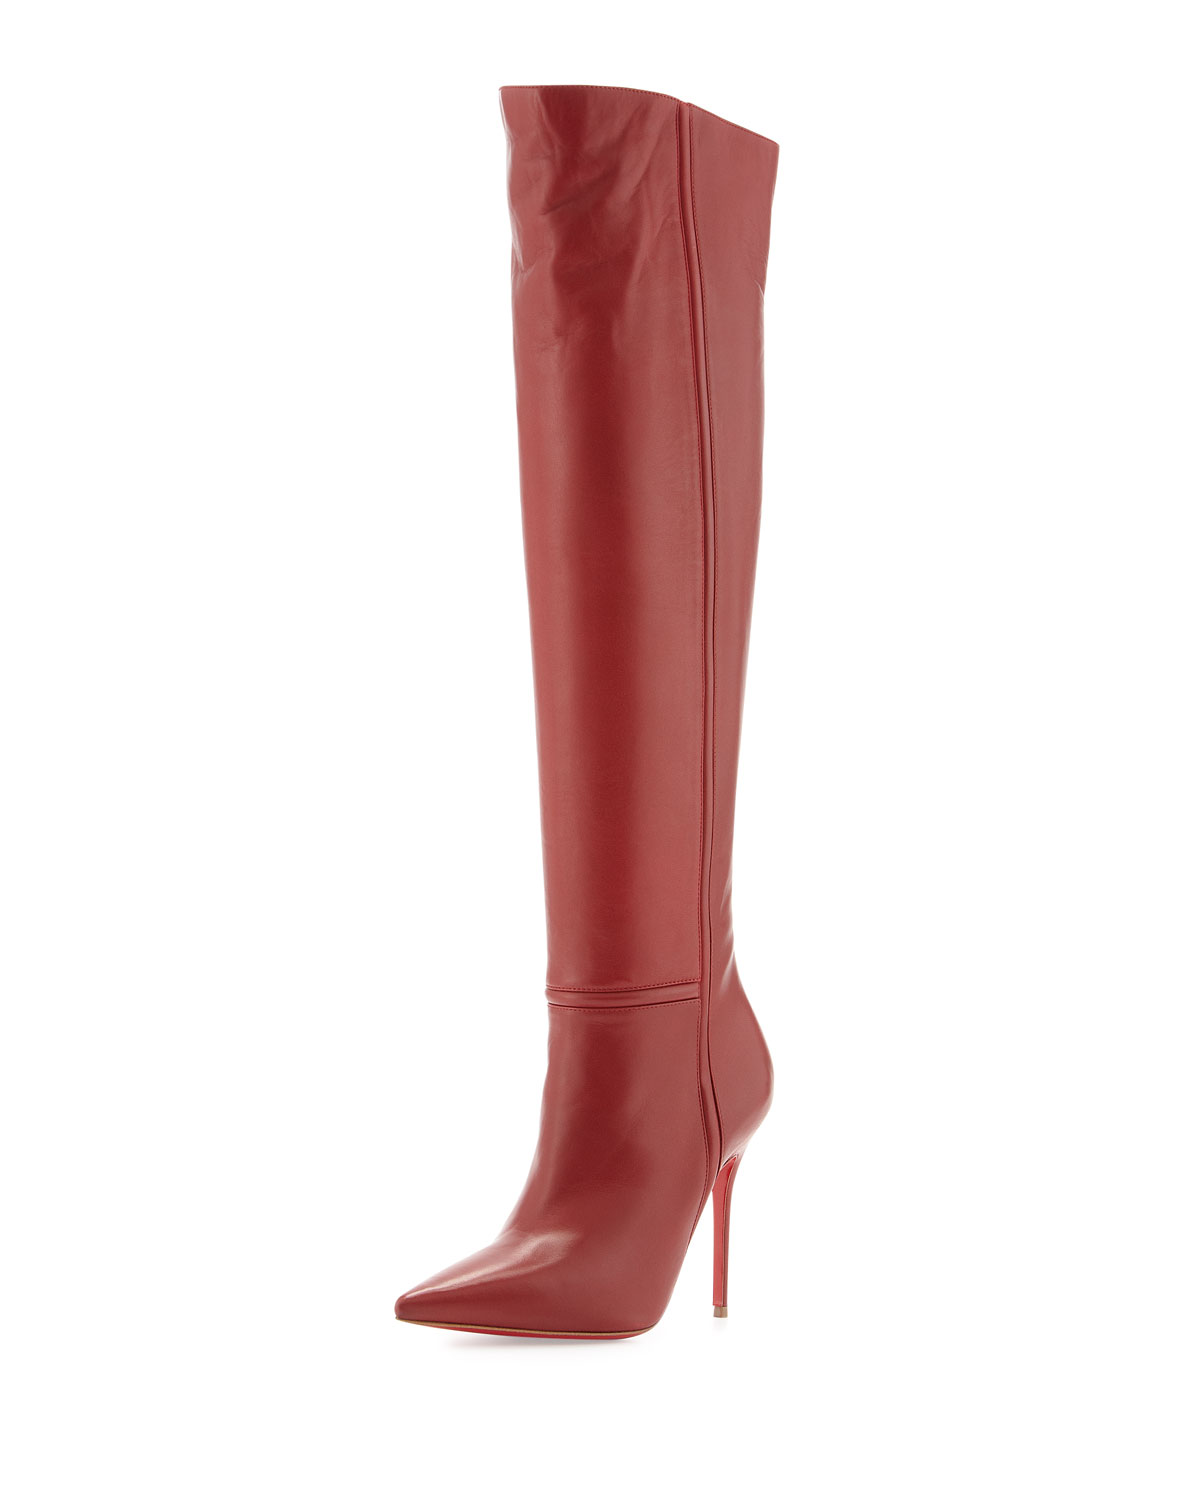 7748ebe28513 Christian Louboutin Armurabotta Thigh-High Pointy Red Sole Boot